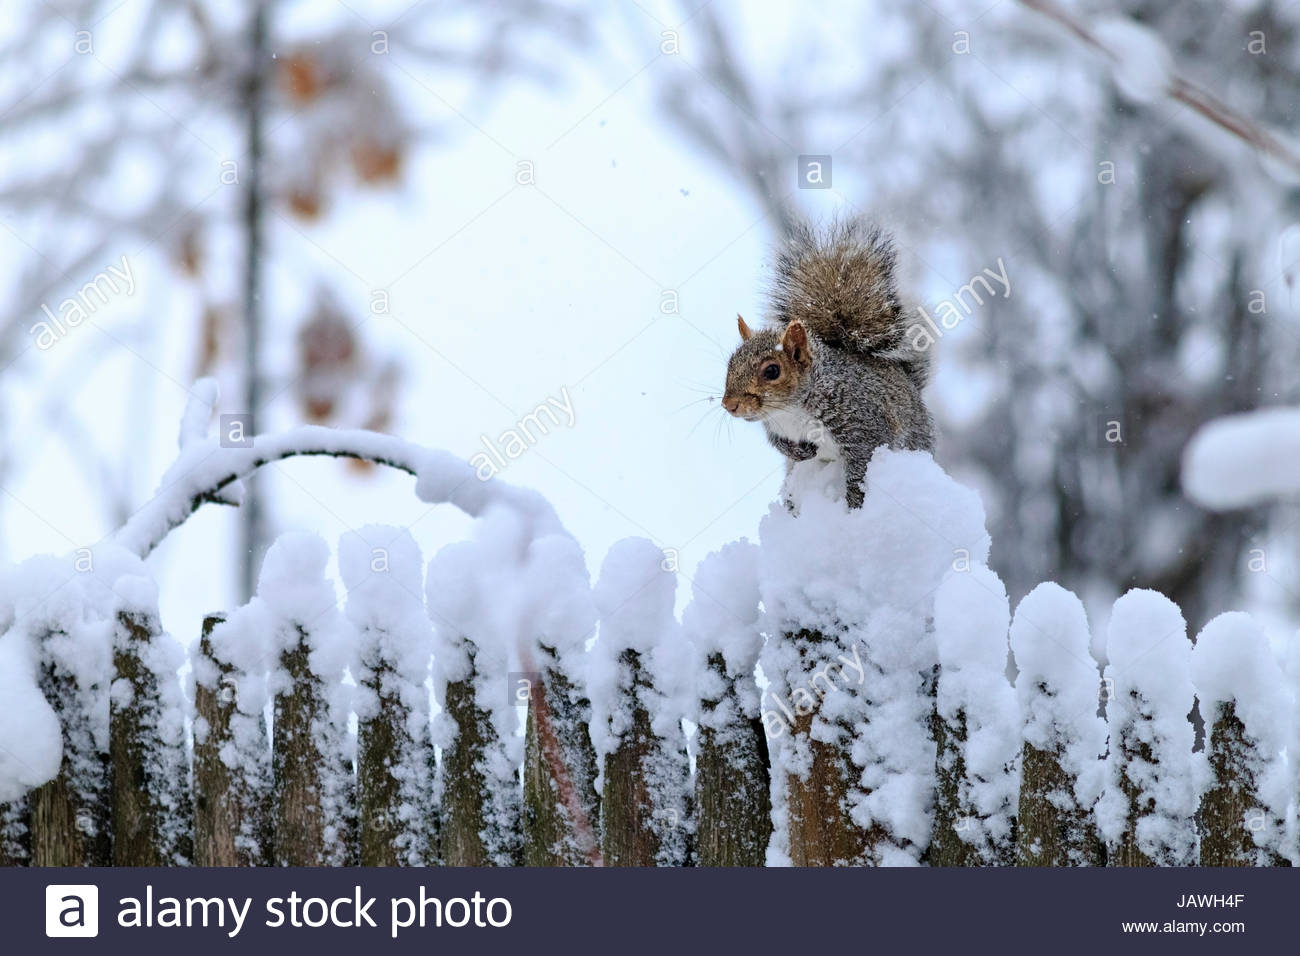 Eastern grey squirrel, Sciurus carolinensis, in snow on a wood fence. - Stock Image